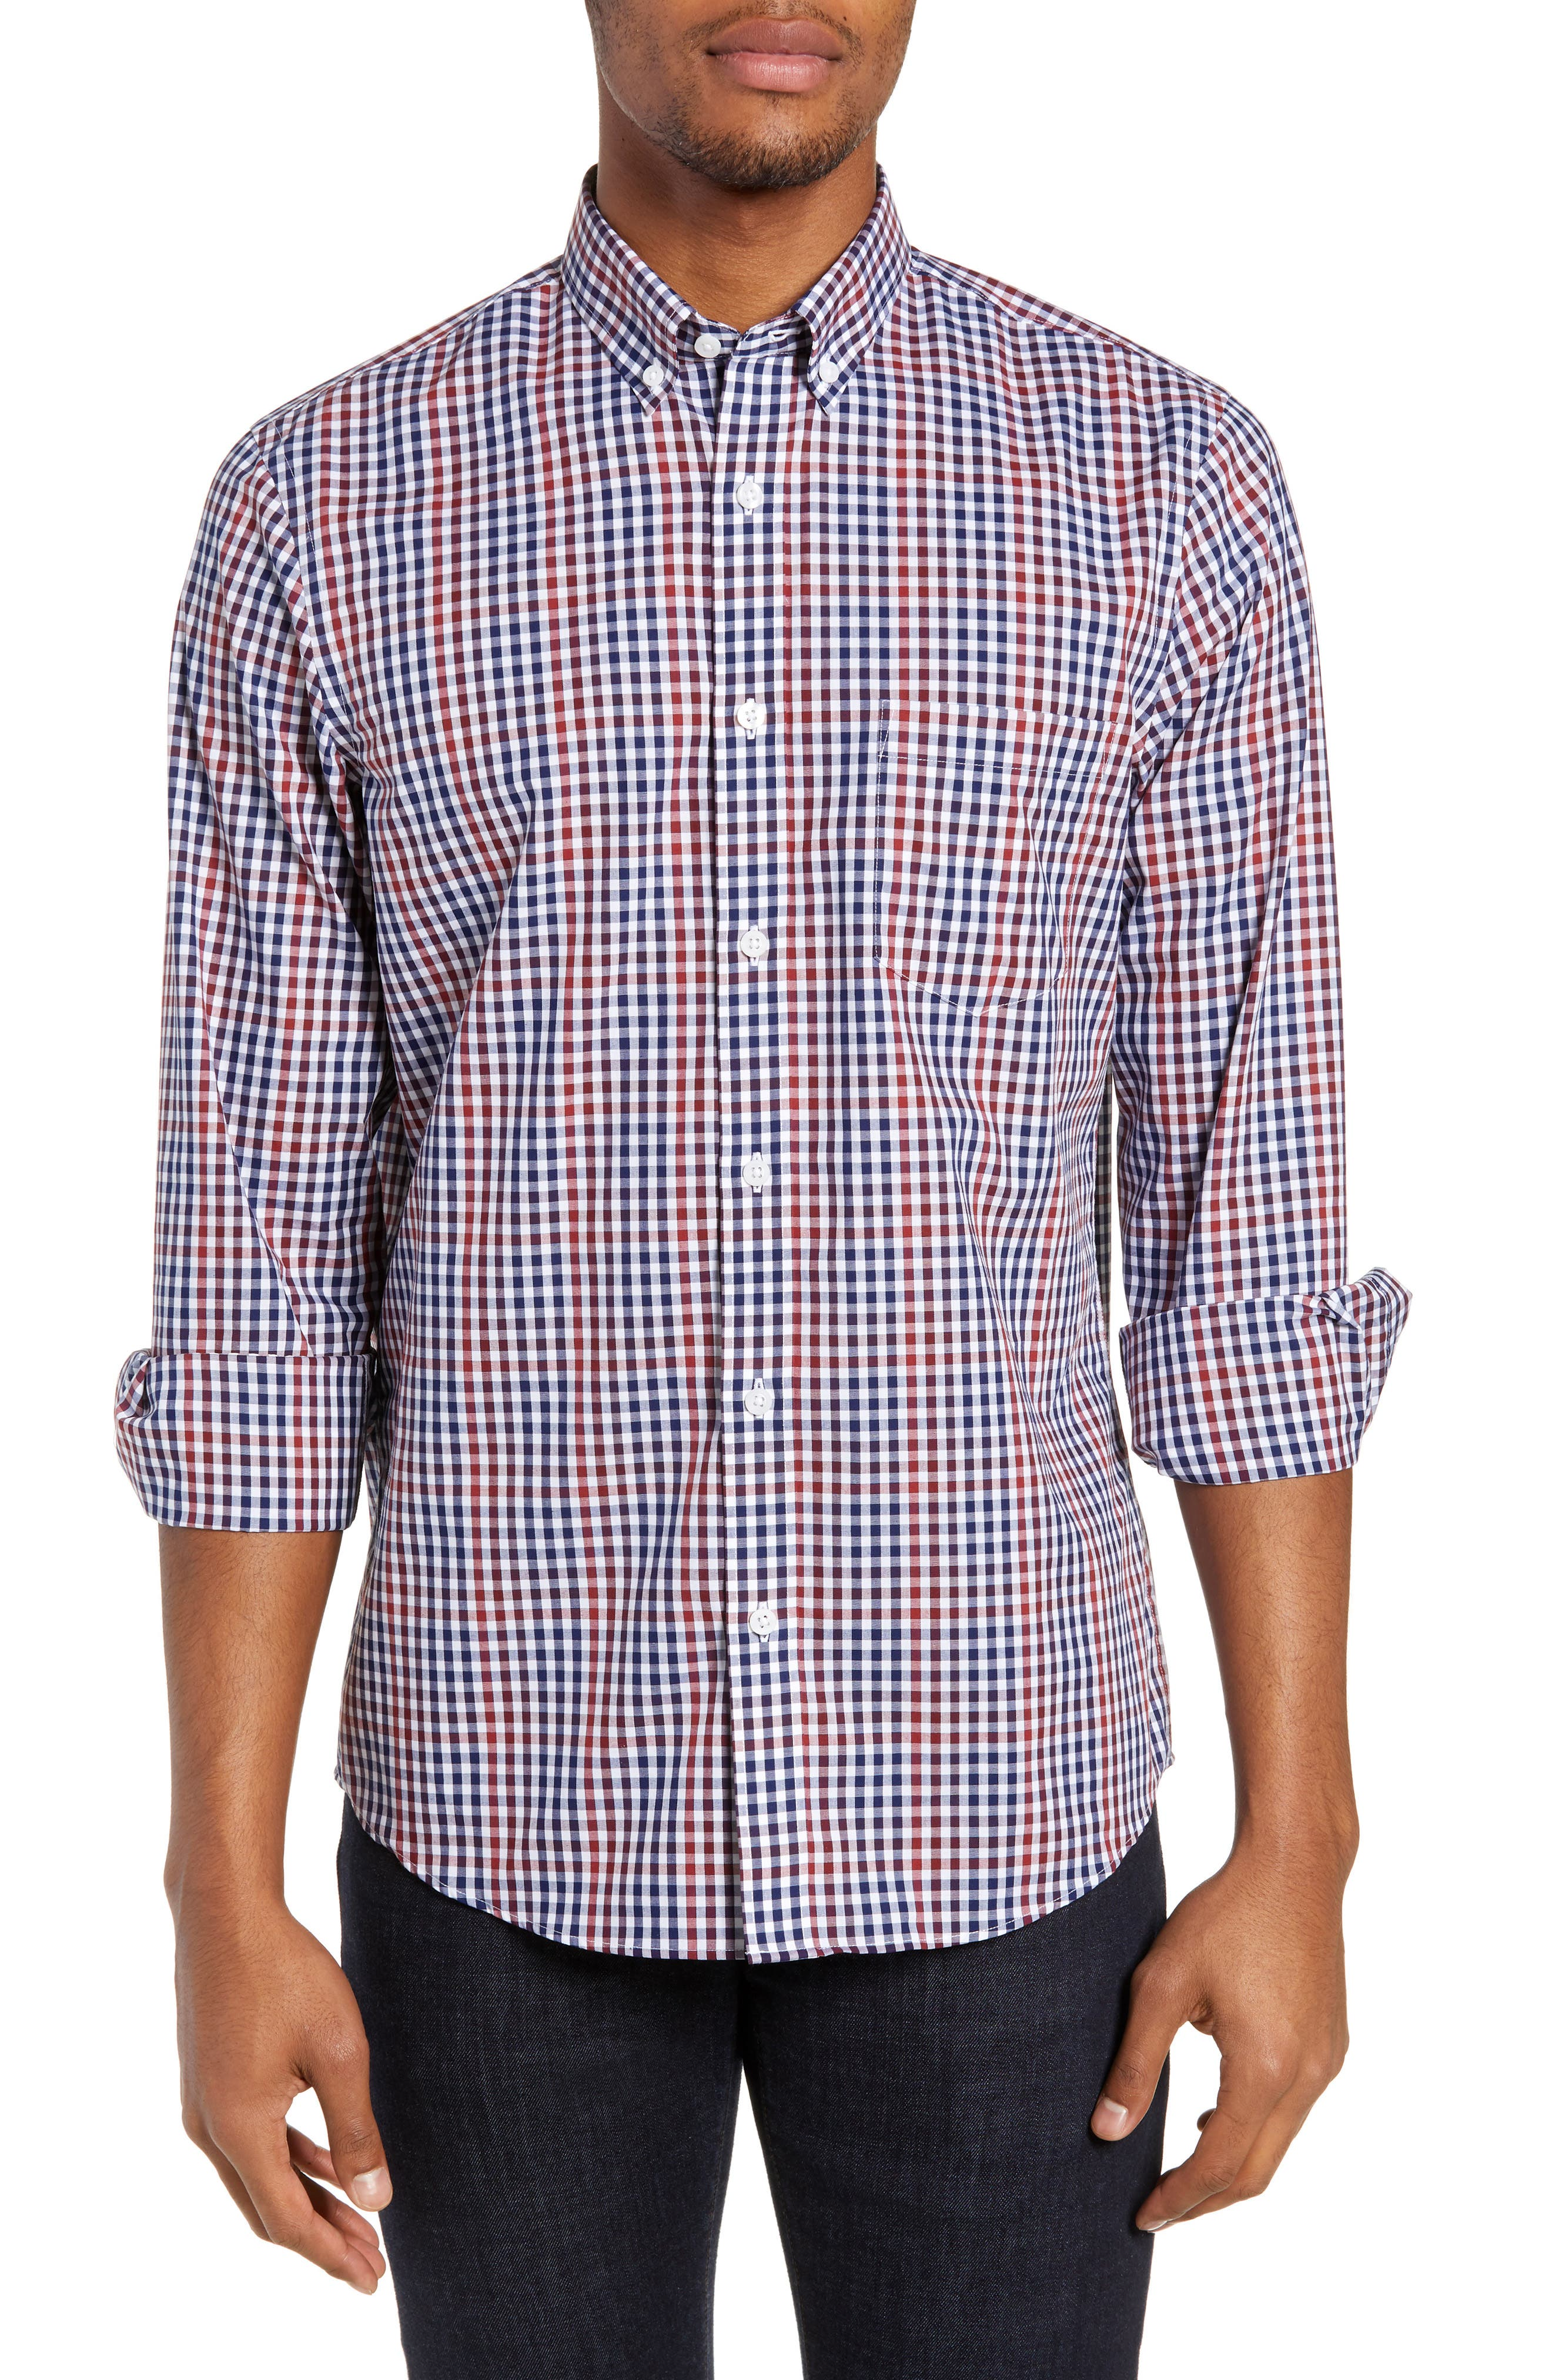 NORDSTROM MEN'S SHOP, Slim Fit Non-Iron Gingham Sport Shirt, Main thumbnail 1, color, 610